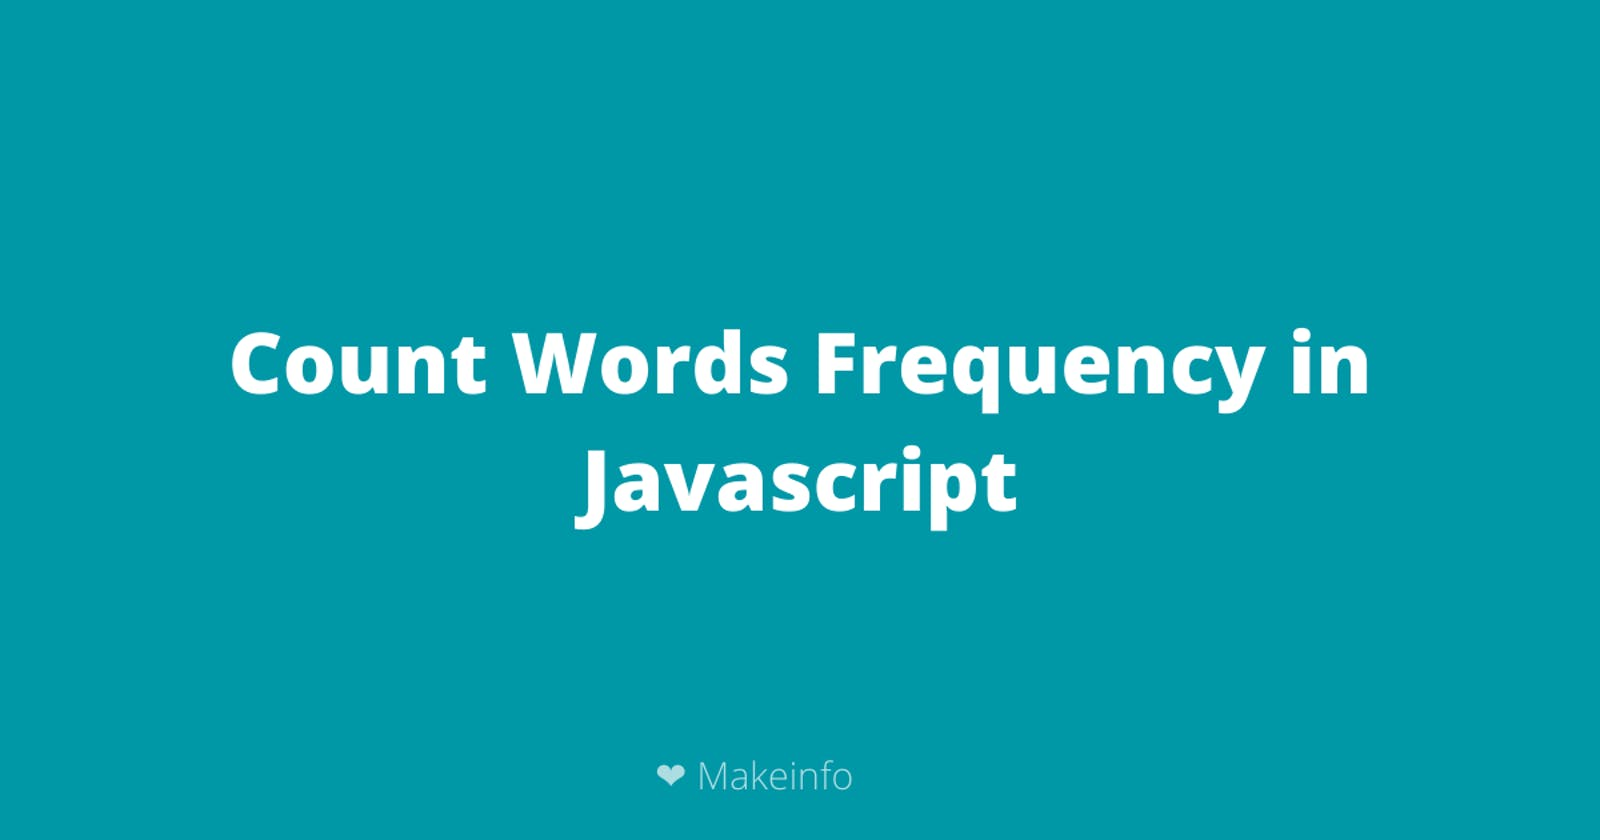 Count words frequency using Javascript